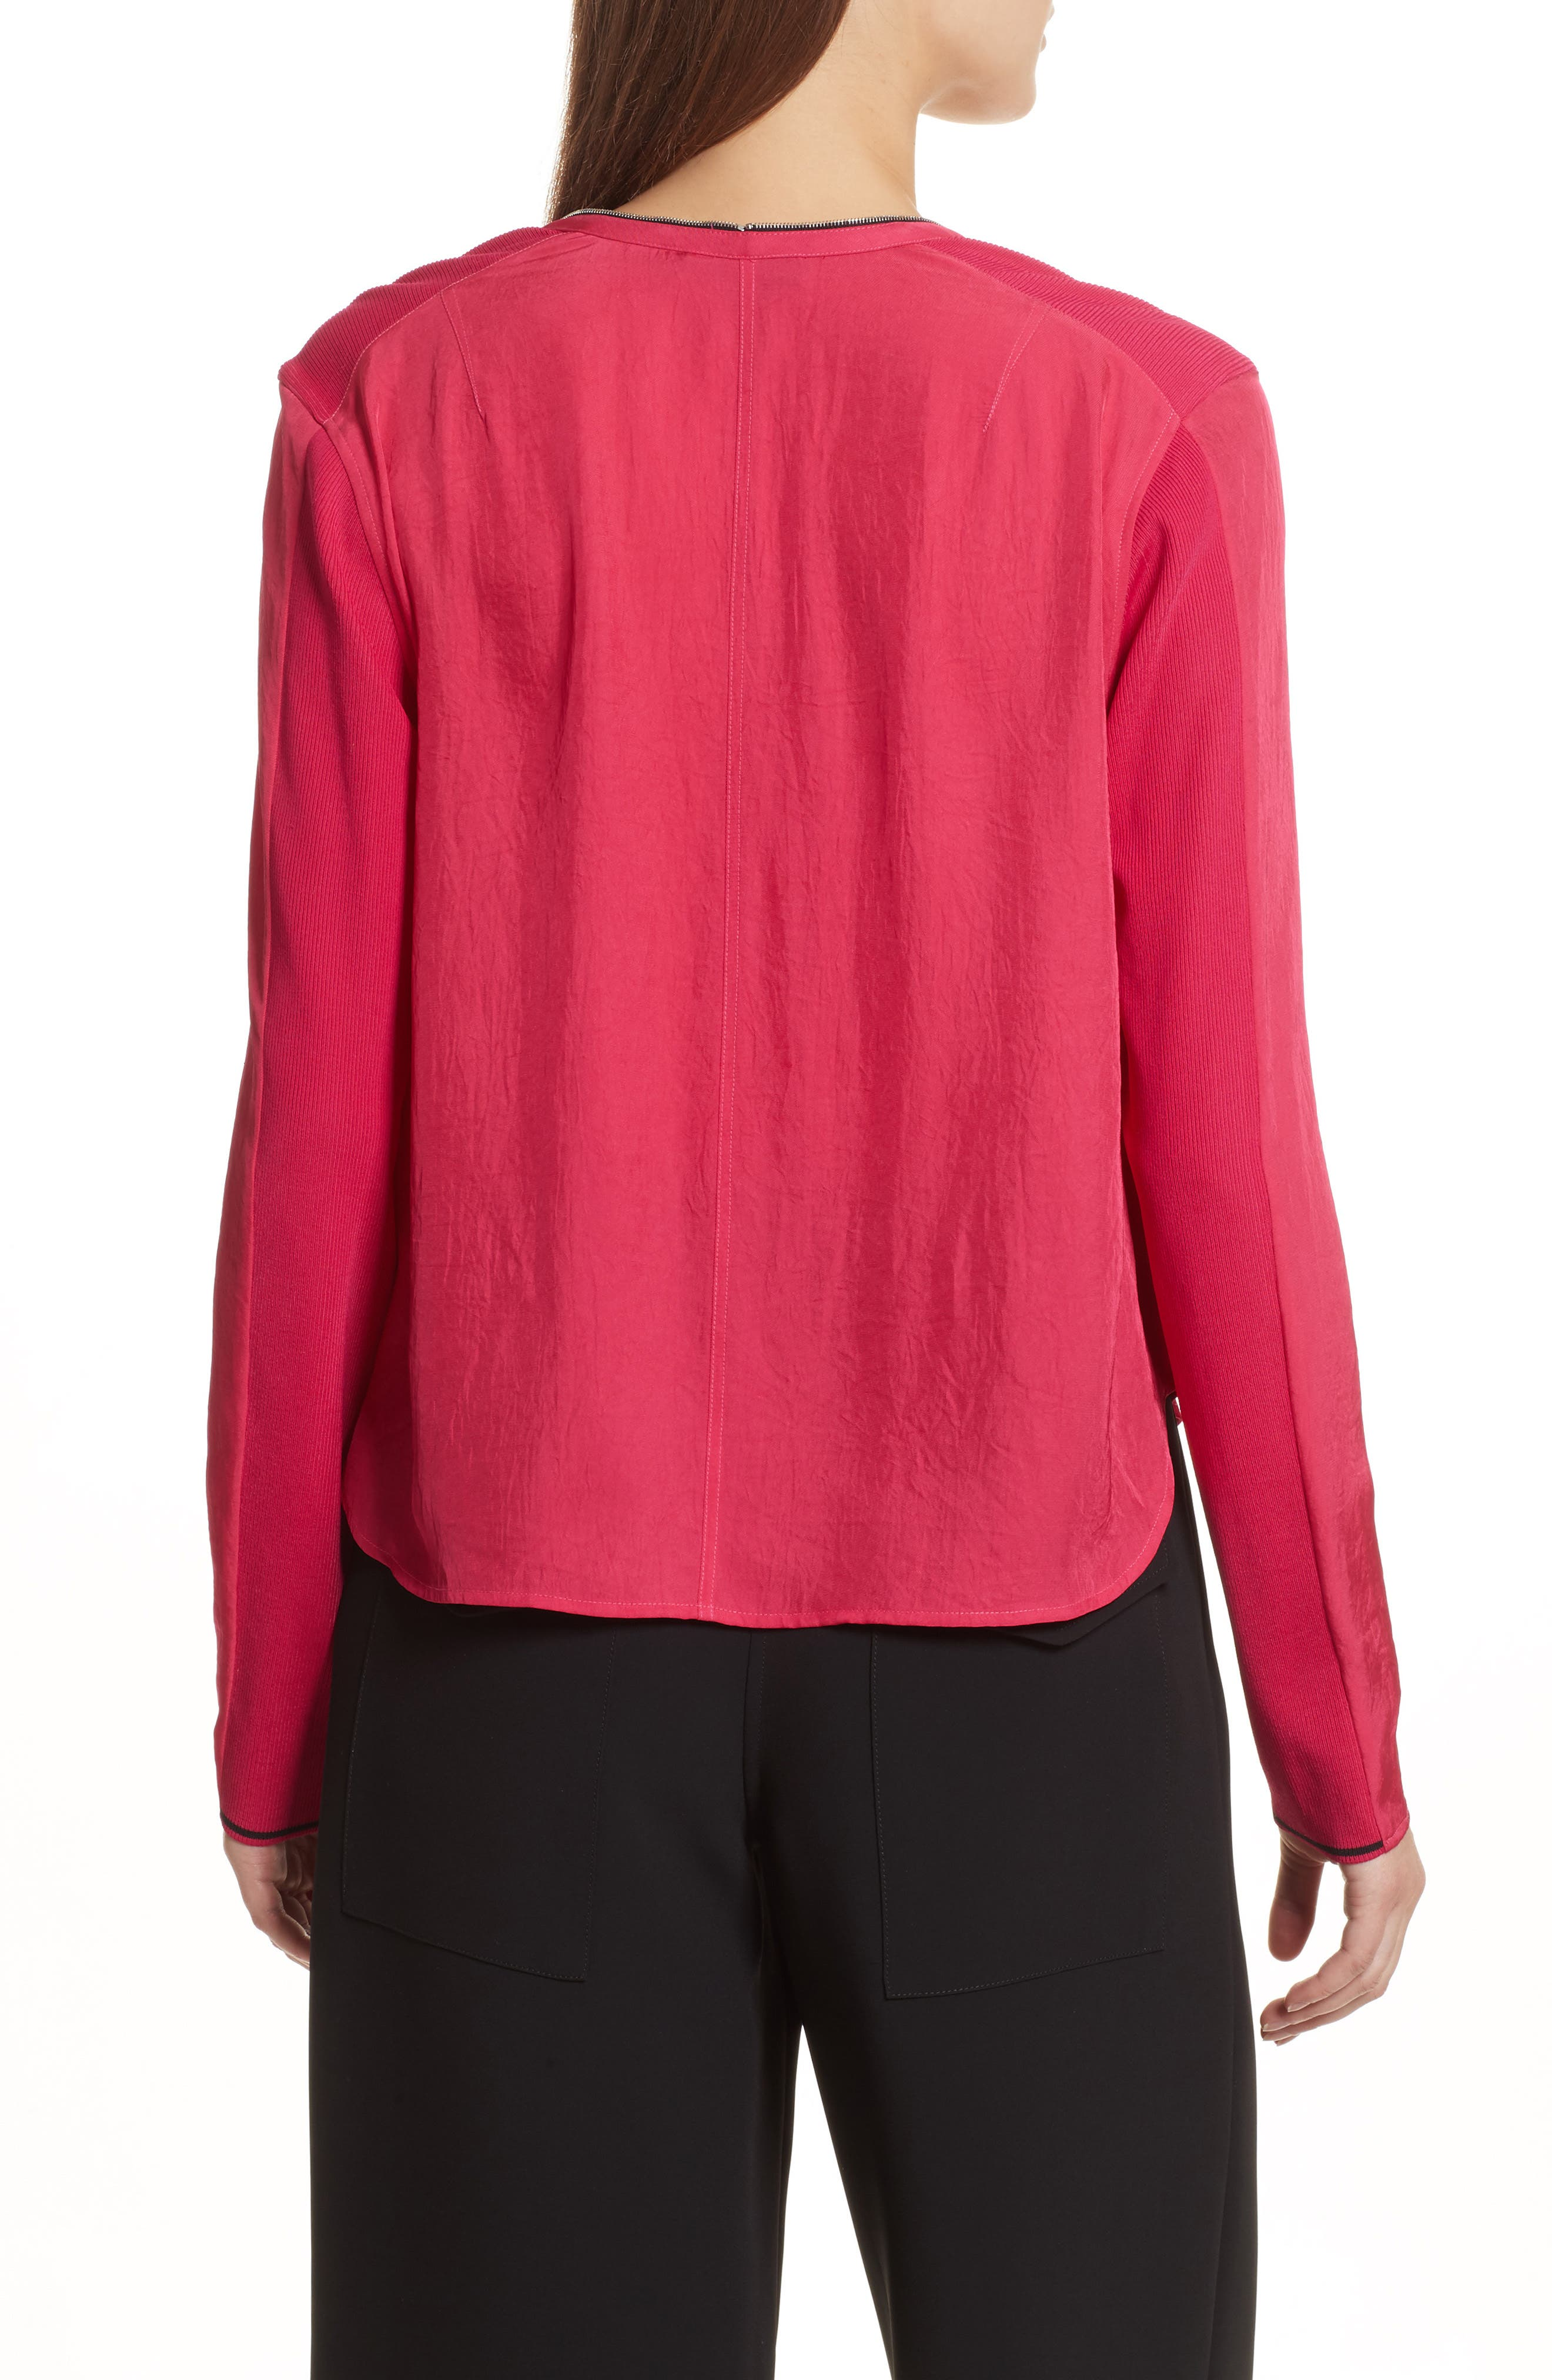 Vanessa Zip Front Blouse,                             Alternate thumbnail 2, color,                             Bright Rose